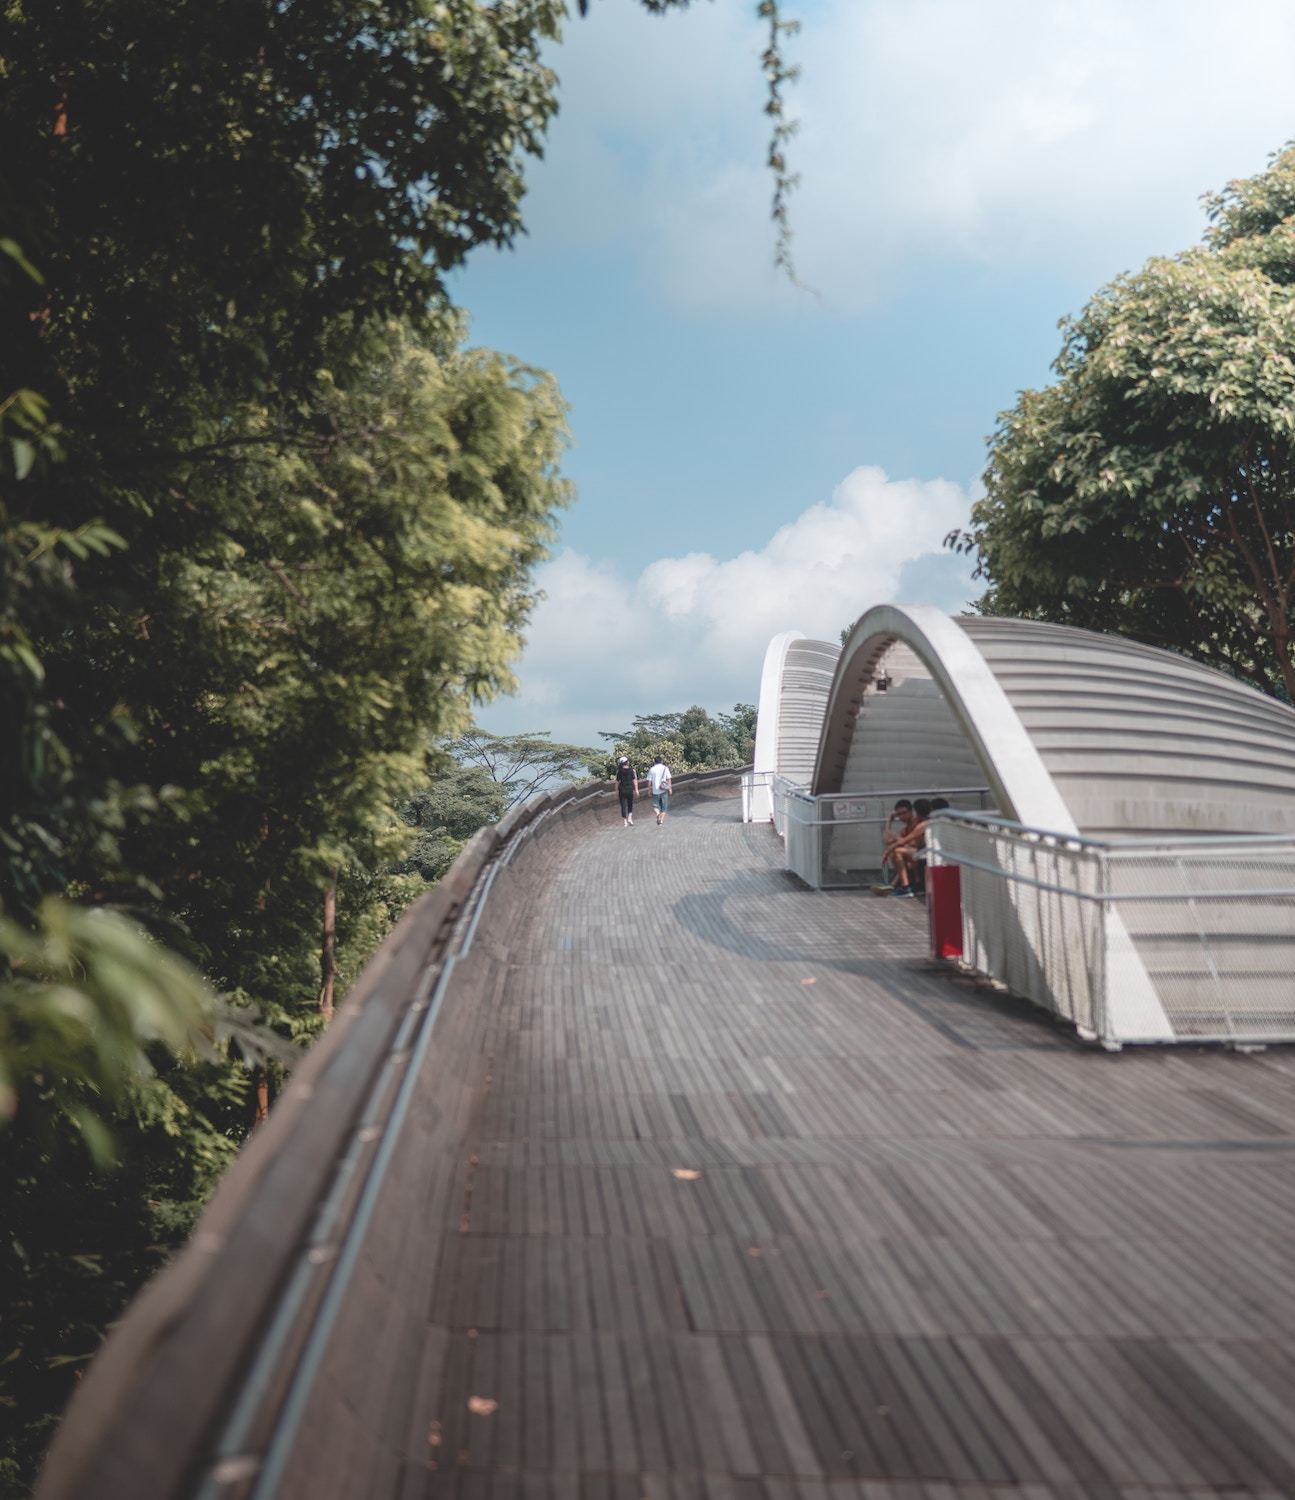 Mount Faber Parl - Singapore Itinerary 2 Days